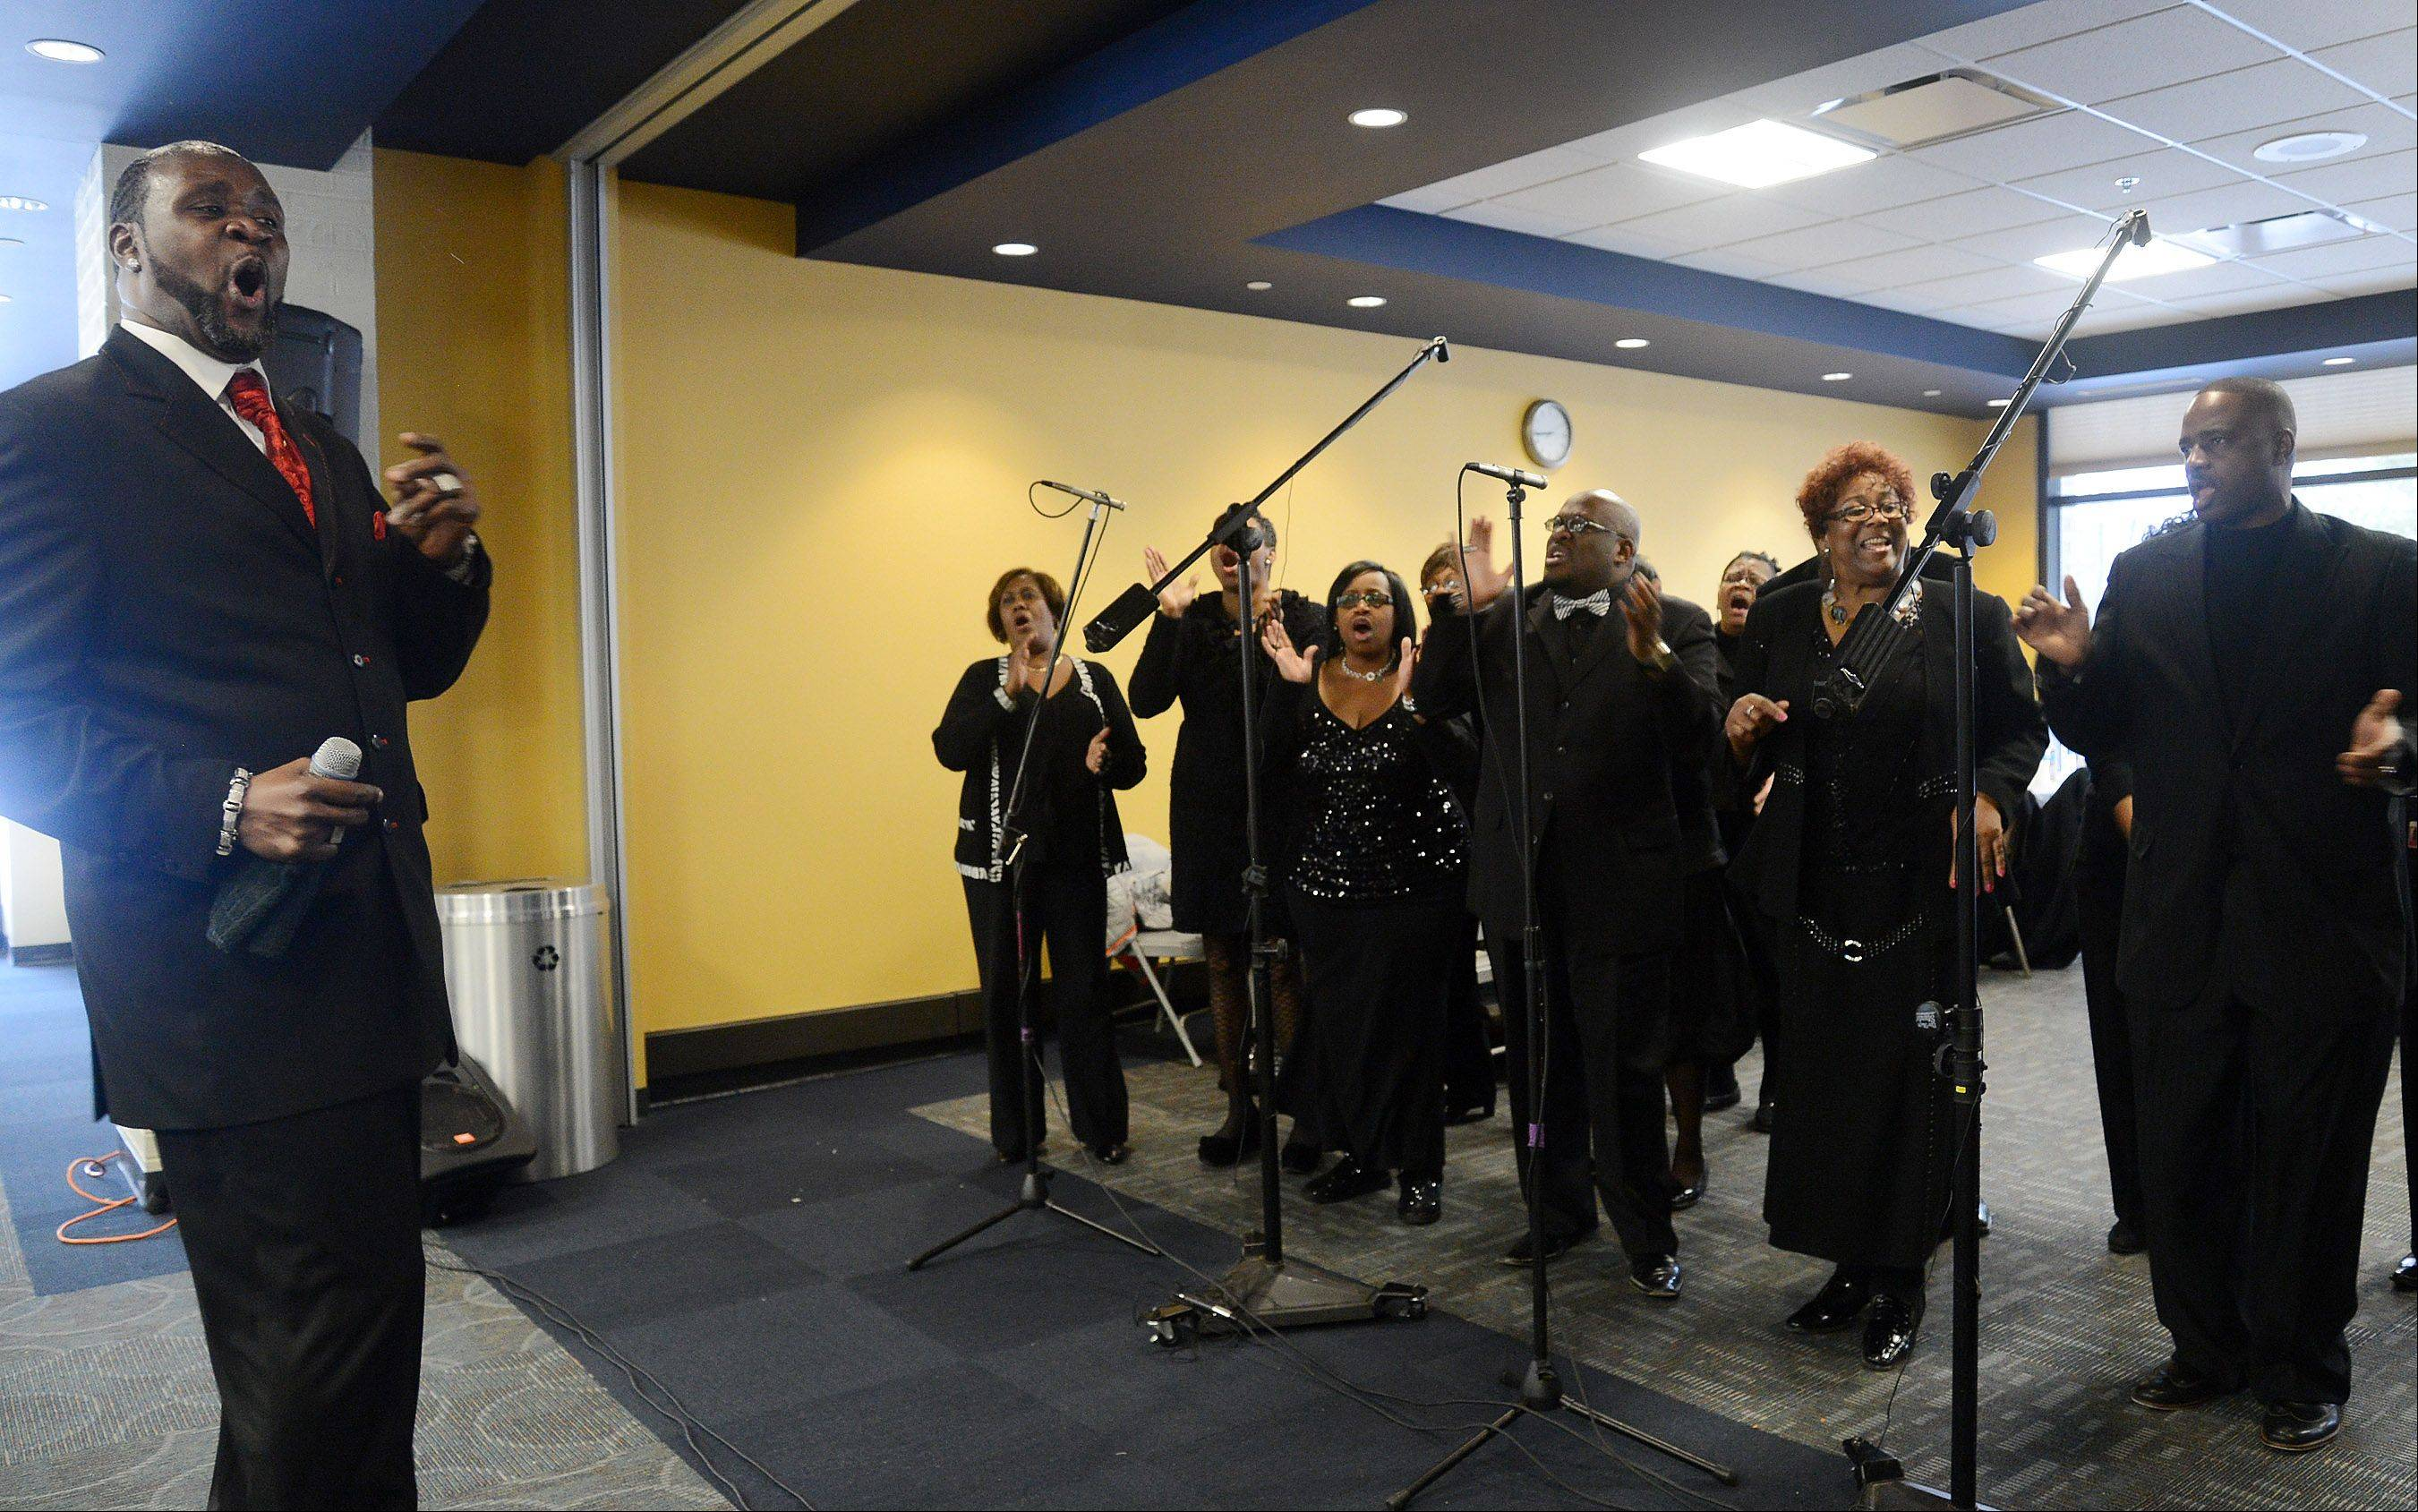 Bob Chwedyk/bchwedyk@dailyherald.comMusical director Jeff Lomax leads the Sears Holdings Associate Gospel Choir on Monday during the Hoffman Estates Cultural Awareness Commission's 12th annual Martin Luther King Jr. Community Breakfast.